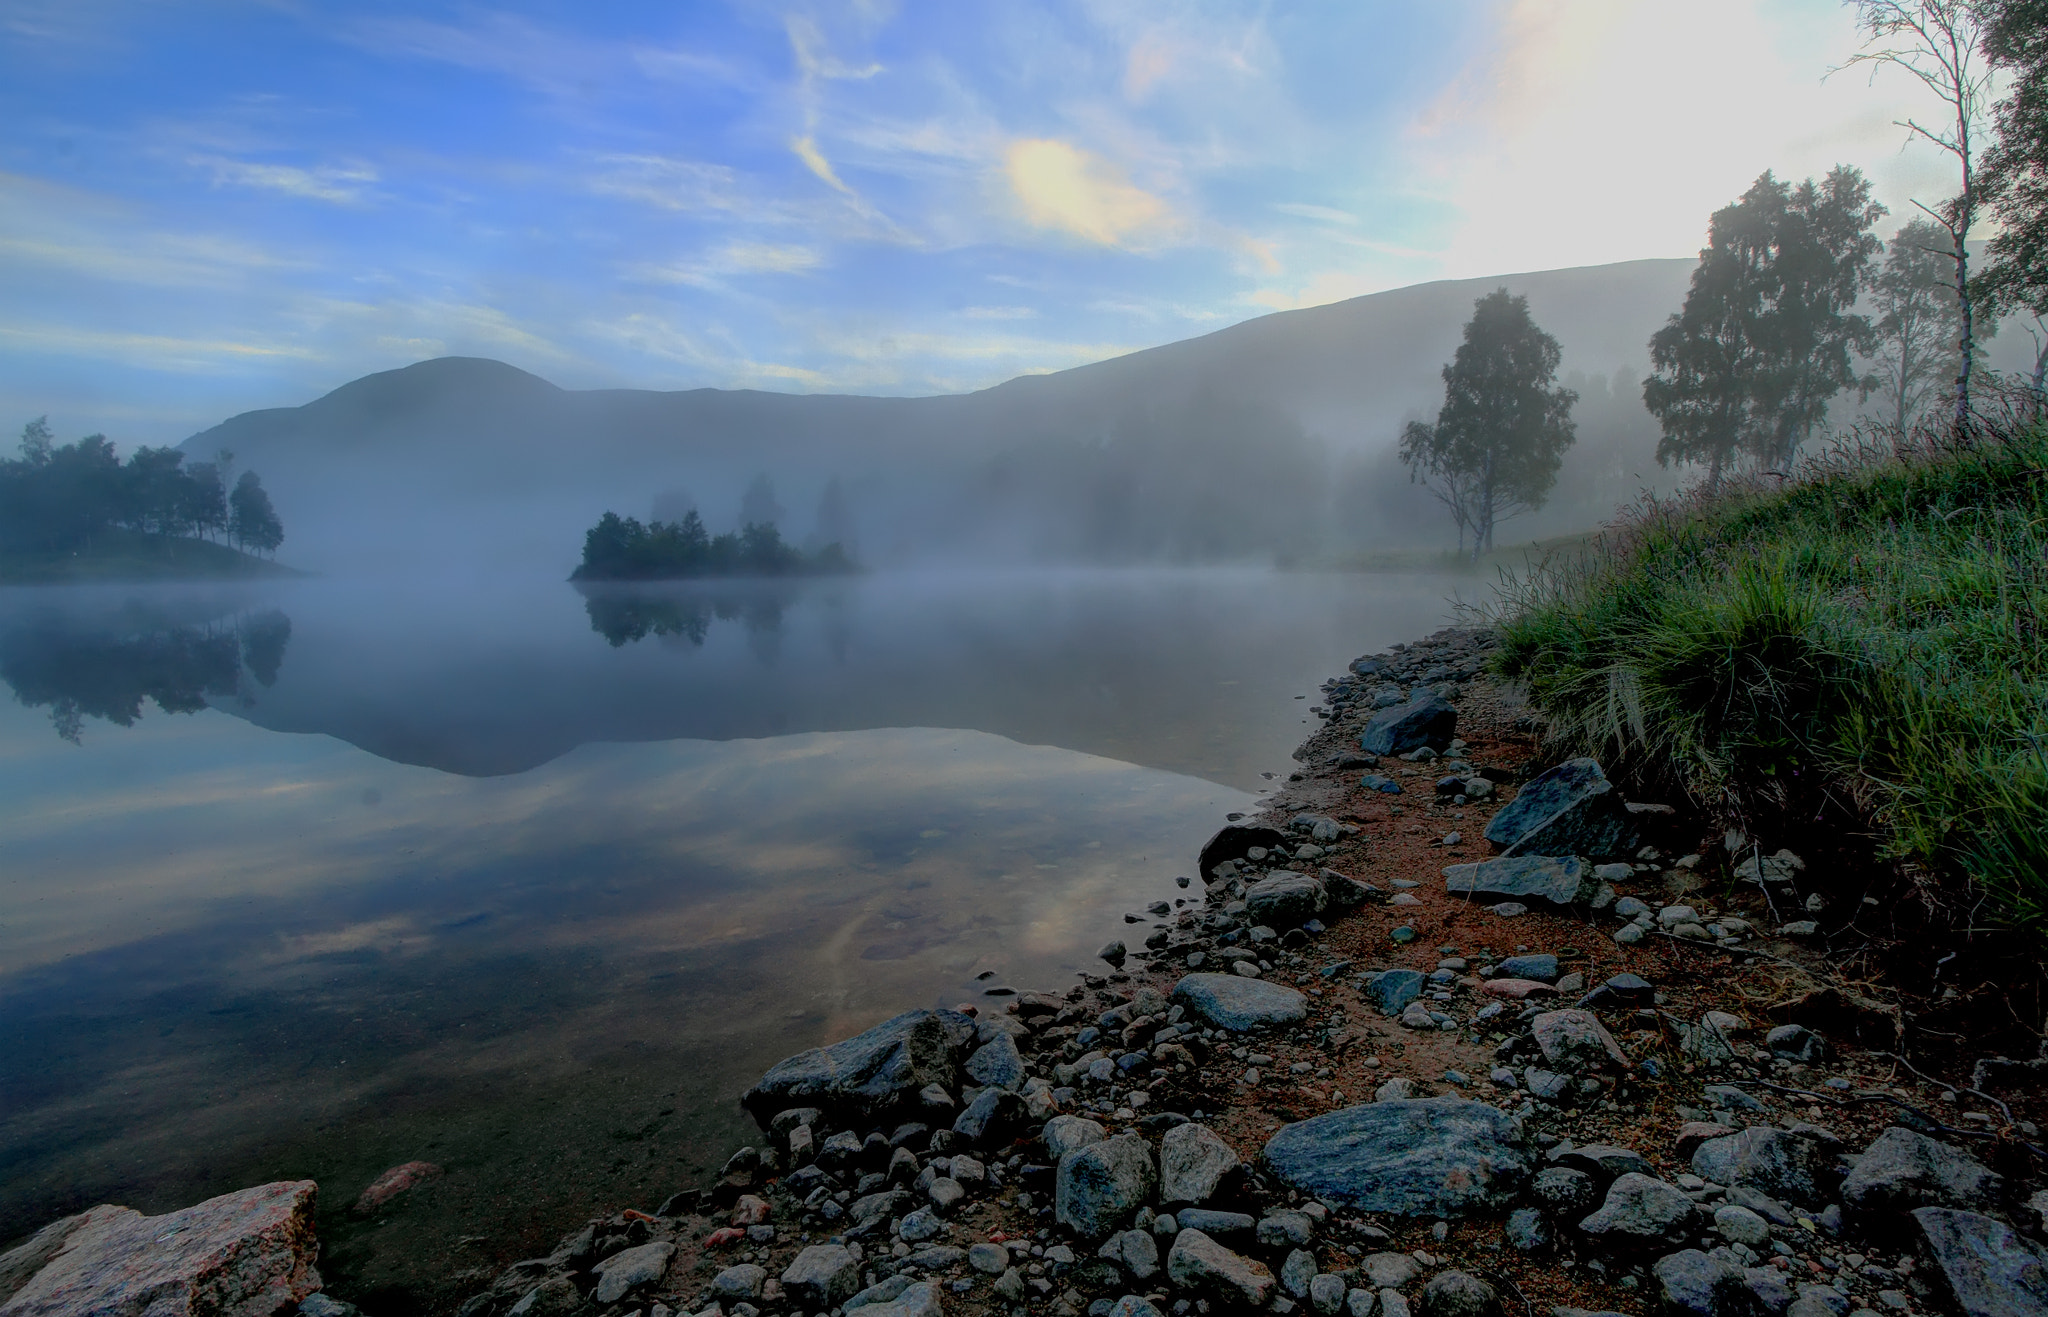 Photograph Misty Reflections by Dave Murray on 500px